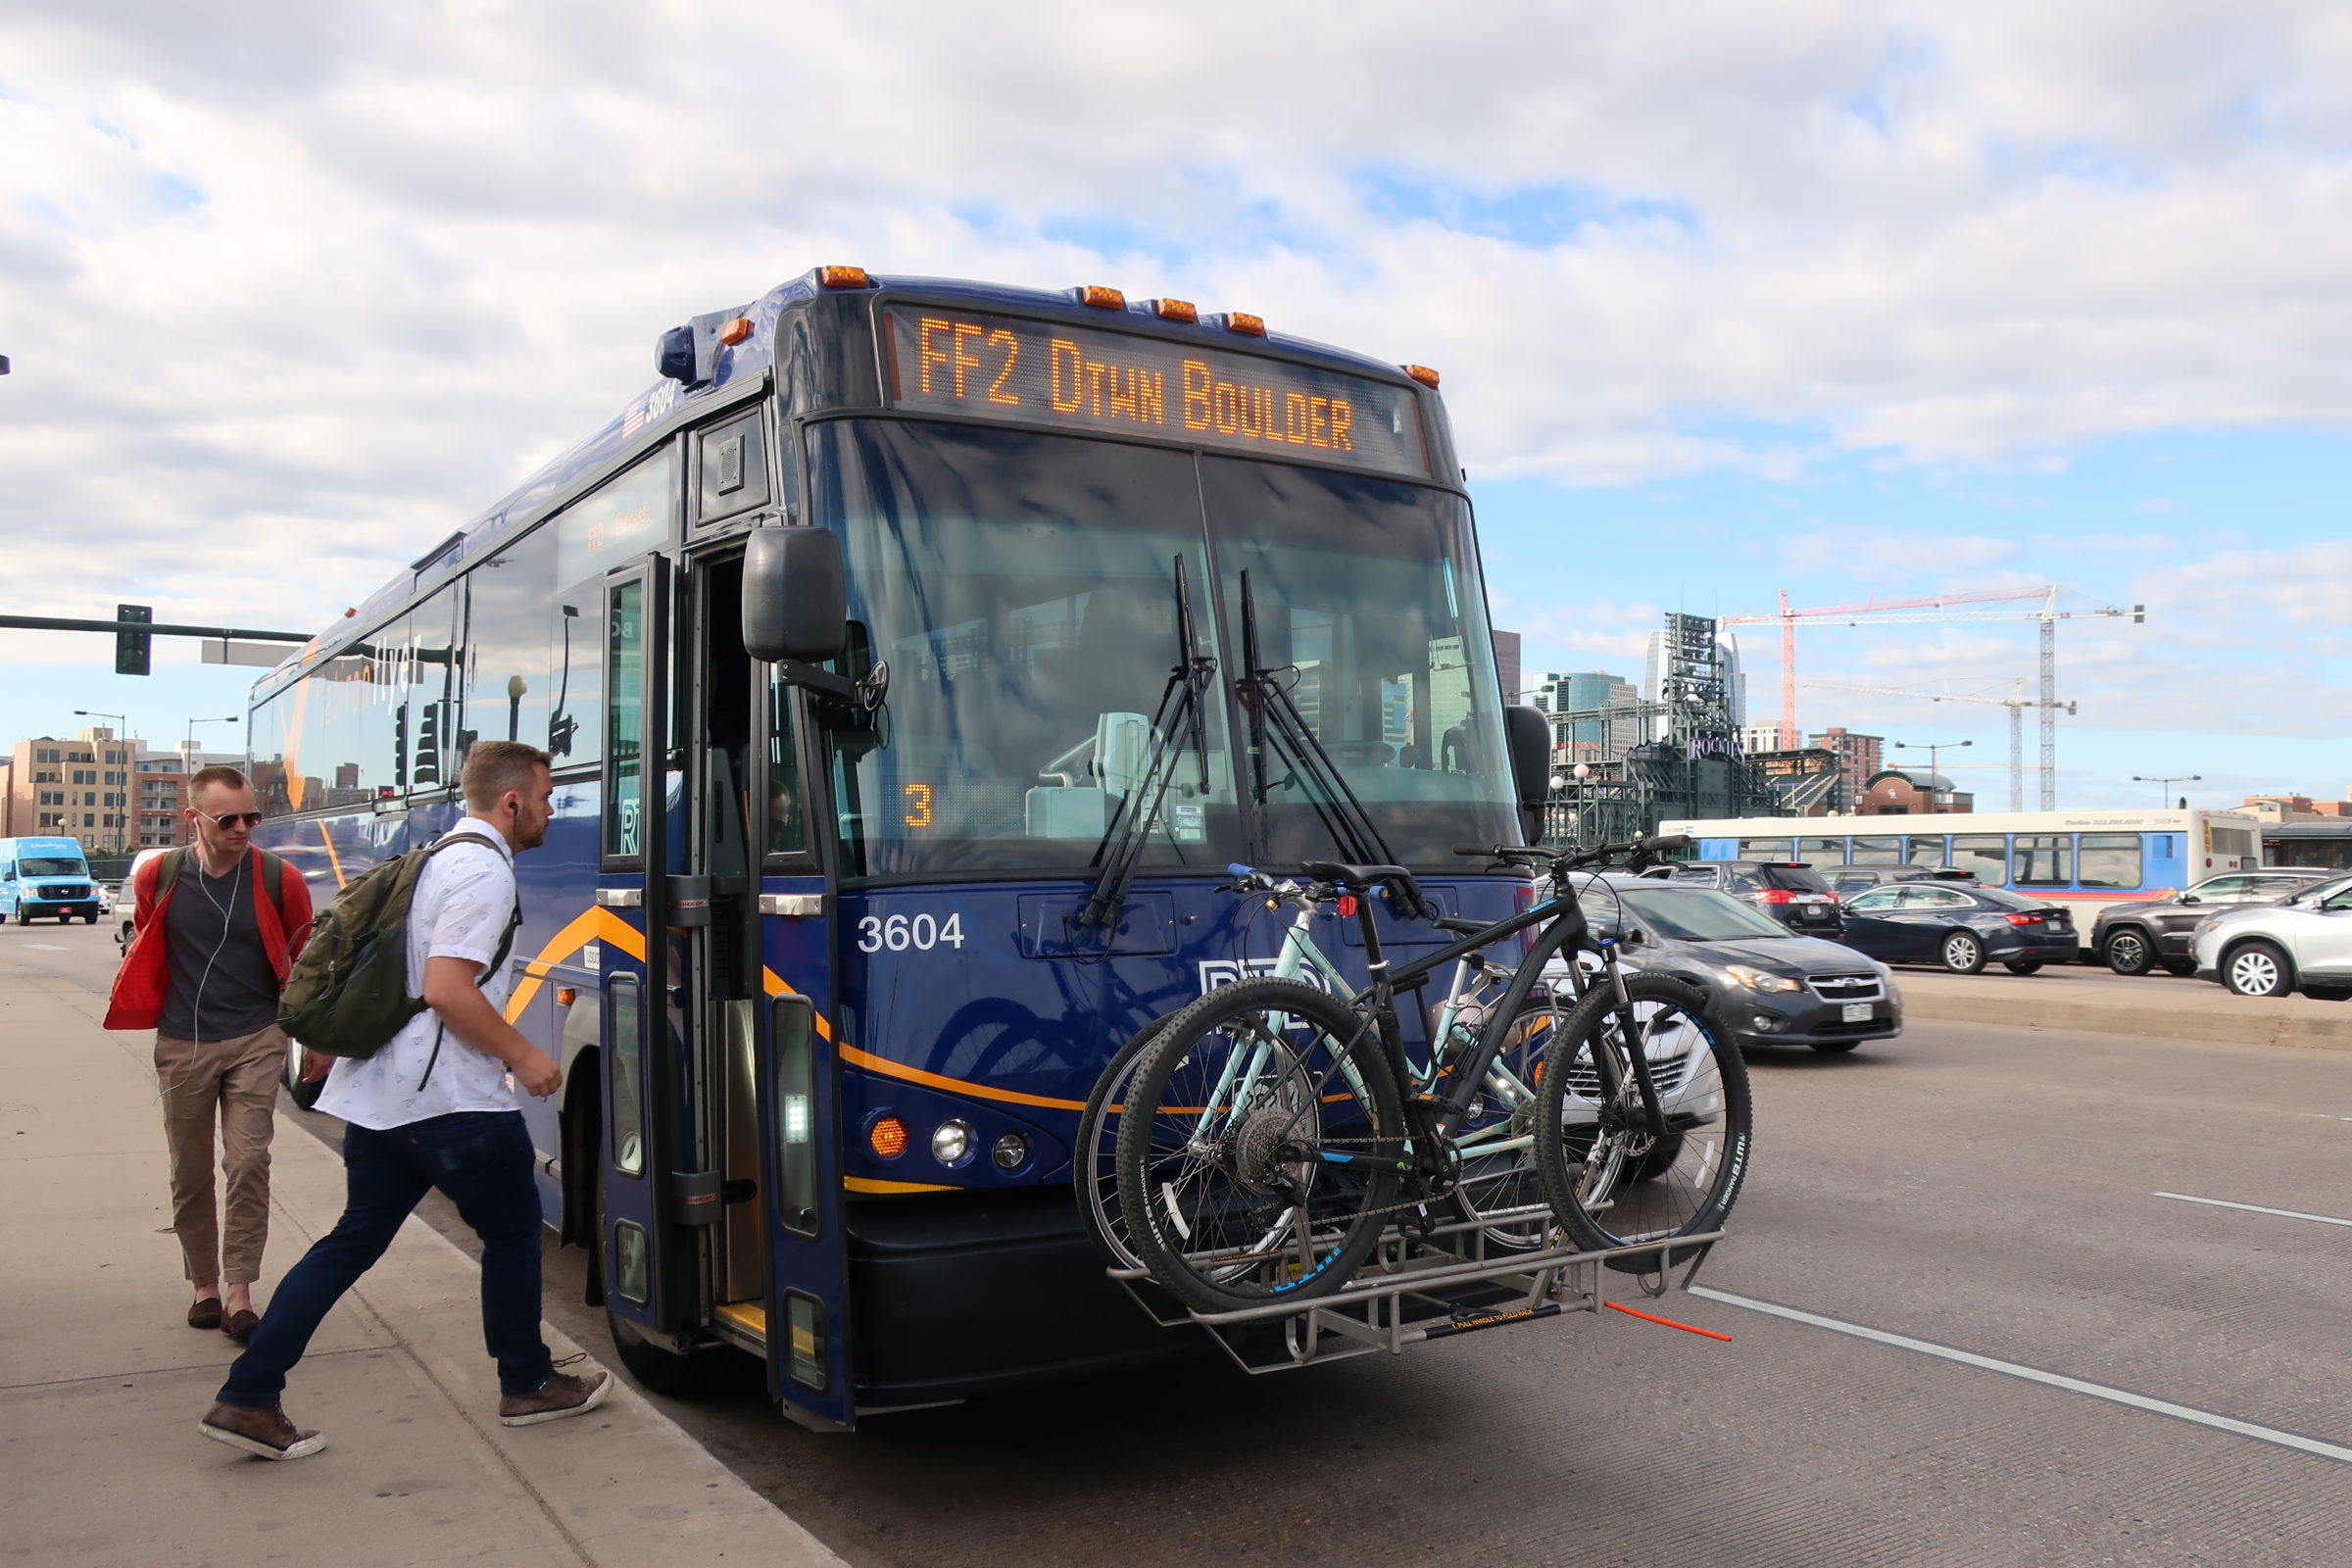 Passengers board the RTD Flatiron Flyer bus in downtown Denver on its way to Boulder on Friday, June 21, 2019. The bus uses toll lanes on U.S. 36 for much of its journey, which allows it to skip some traffic.